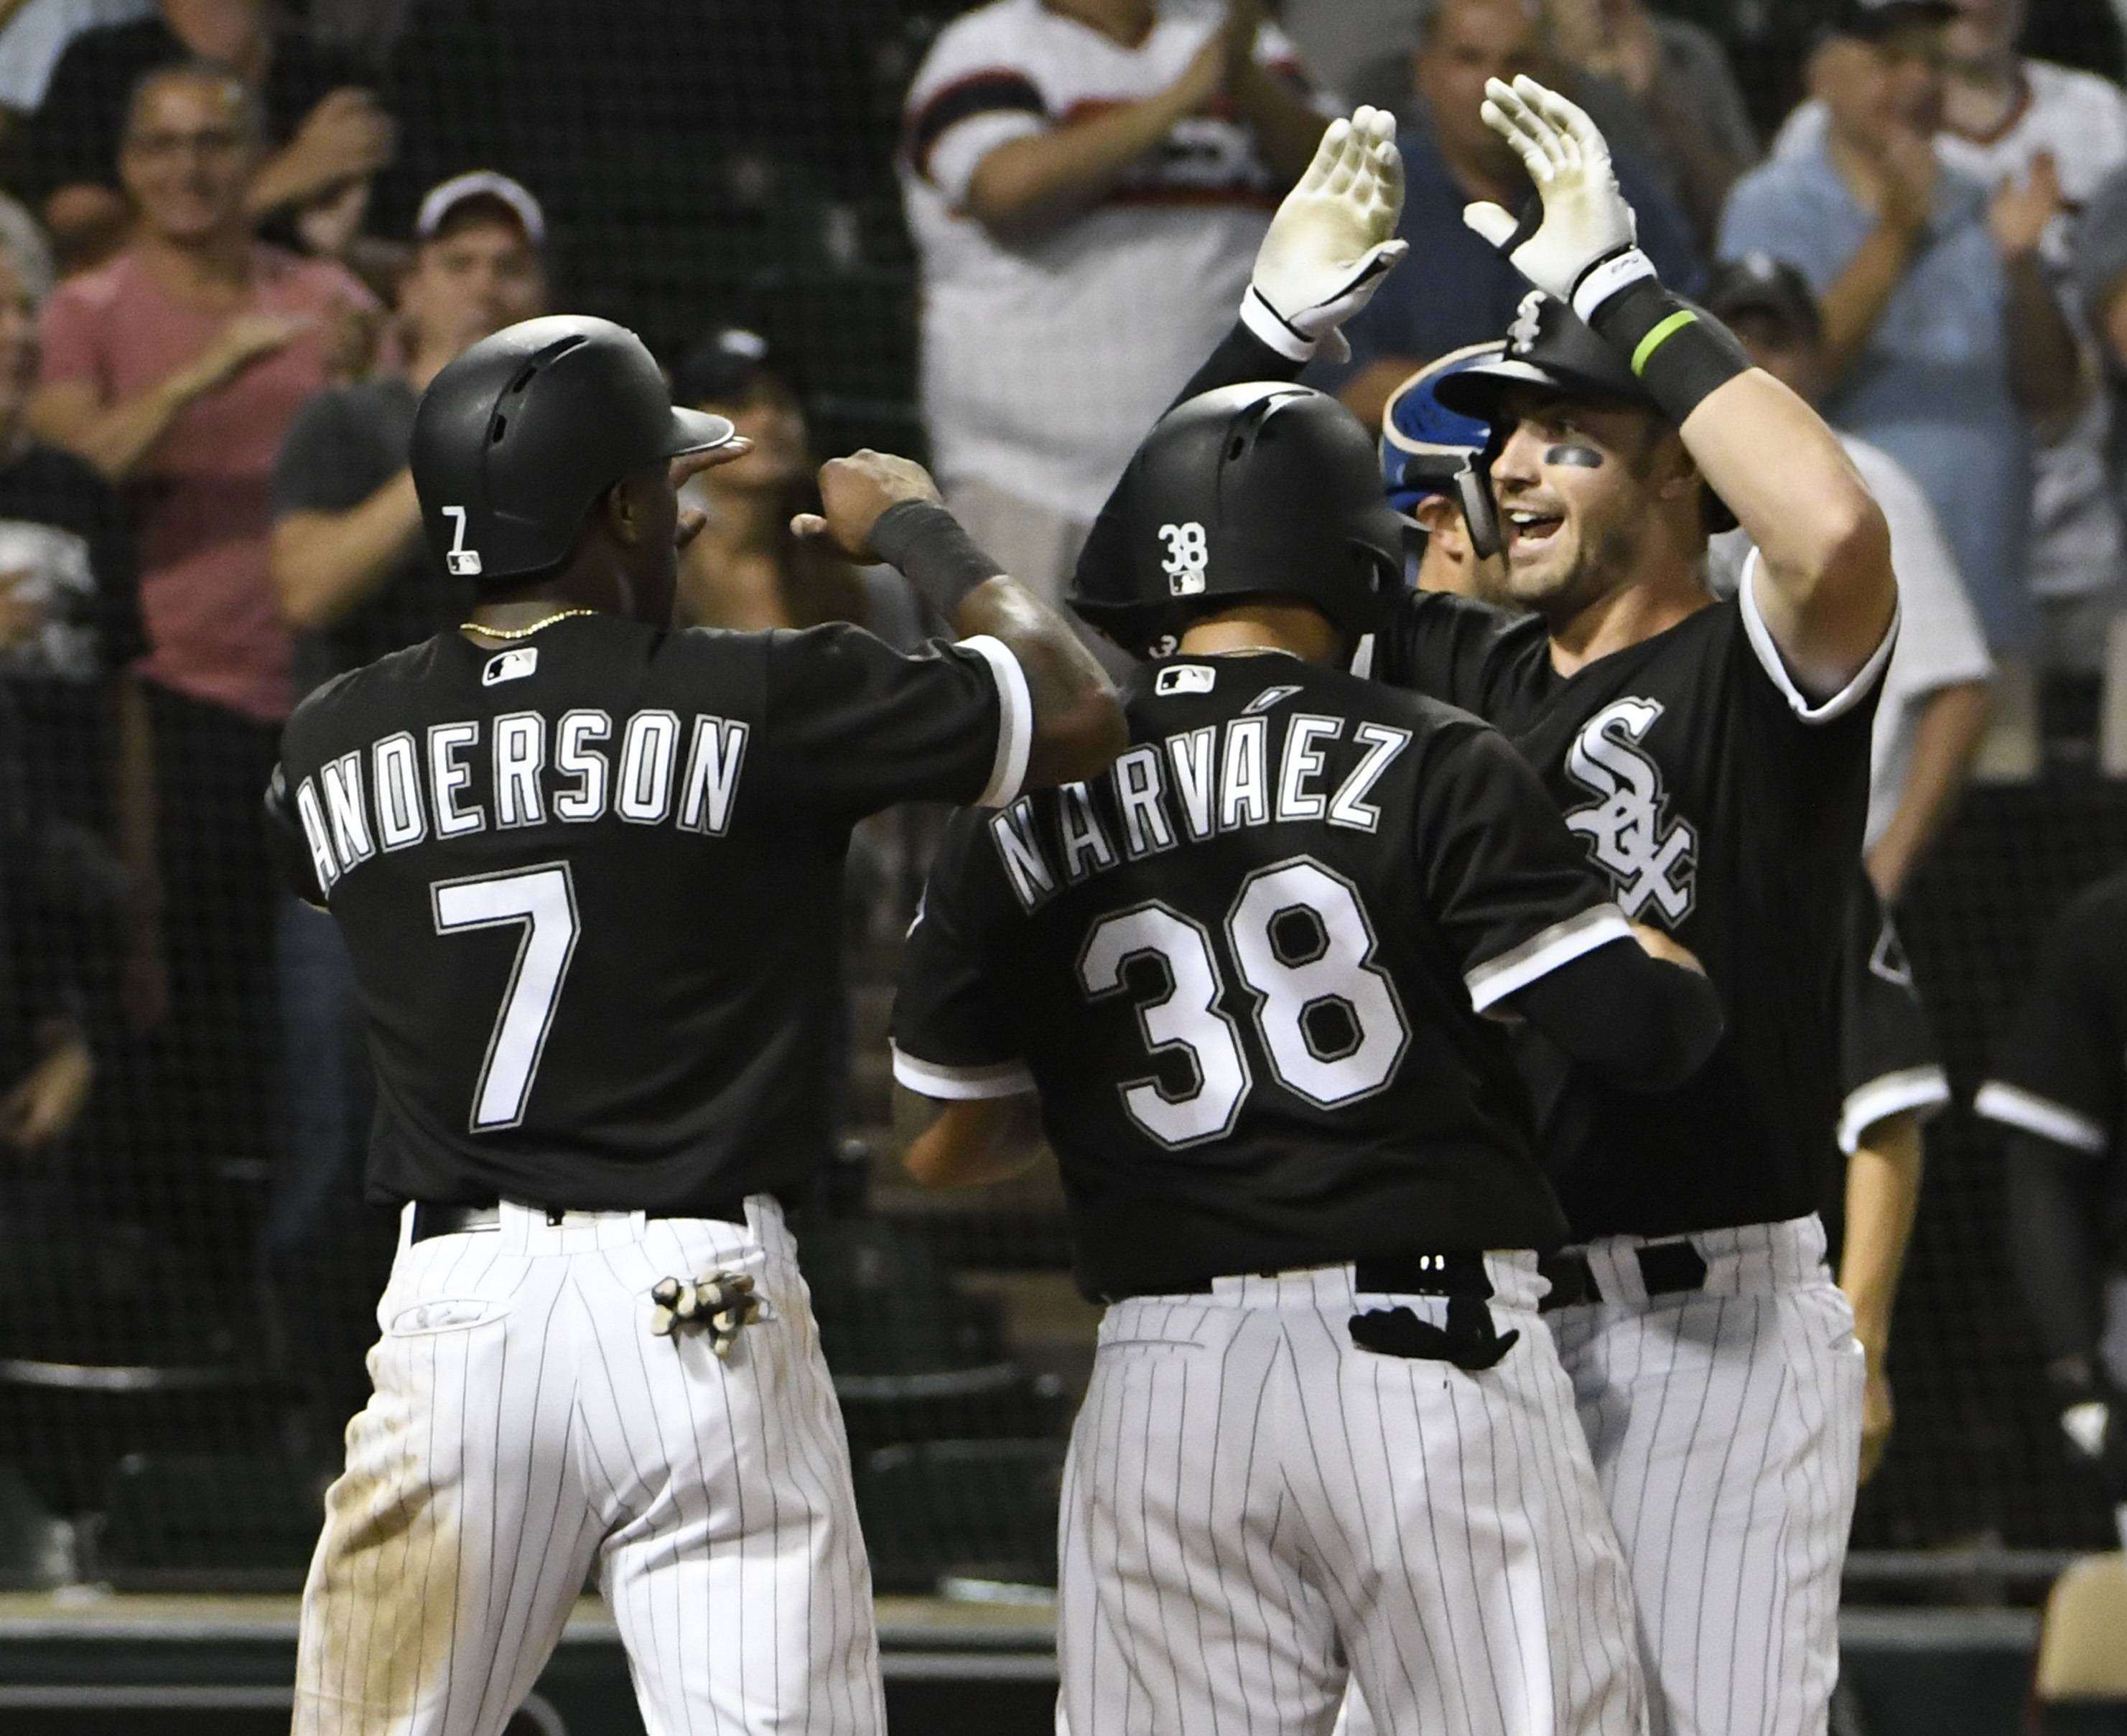 Chicago White Sox's Nicky Delmonico, right, is greeted by Omar Narvaez (38) and Tim Anderson (7) after hitting a three-run home run against the Kansas City Royals during the seventh inning of a baseball game Friday, Aug. 17, 2018, in Chicago. (AP Photo/David Banks)